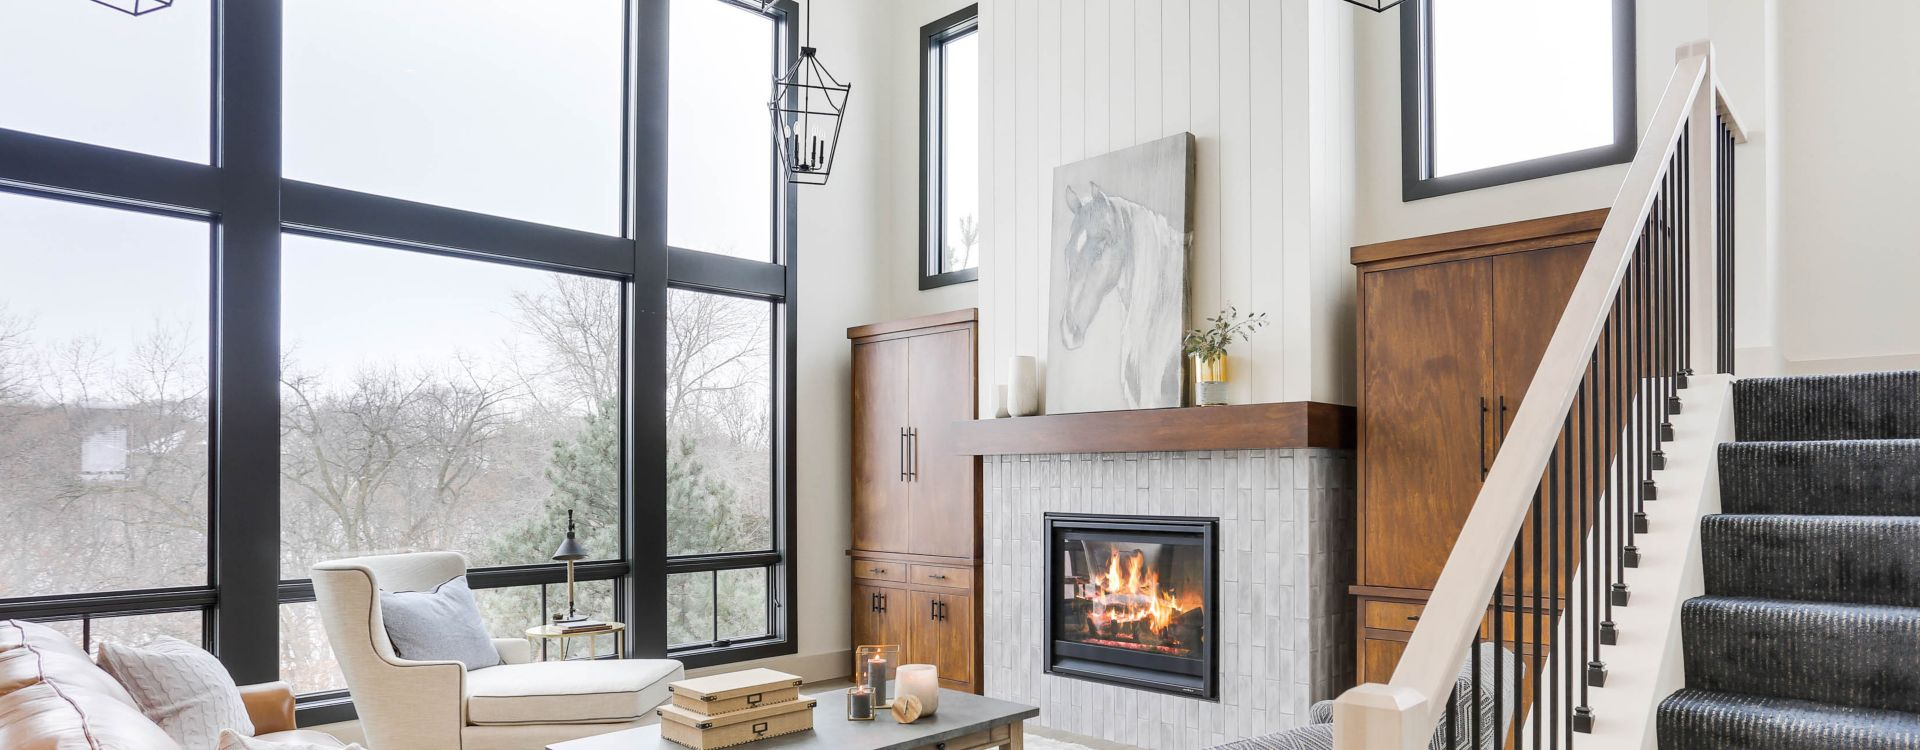 Vertical stack fireplace tile.